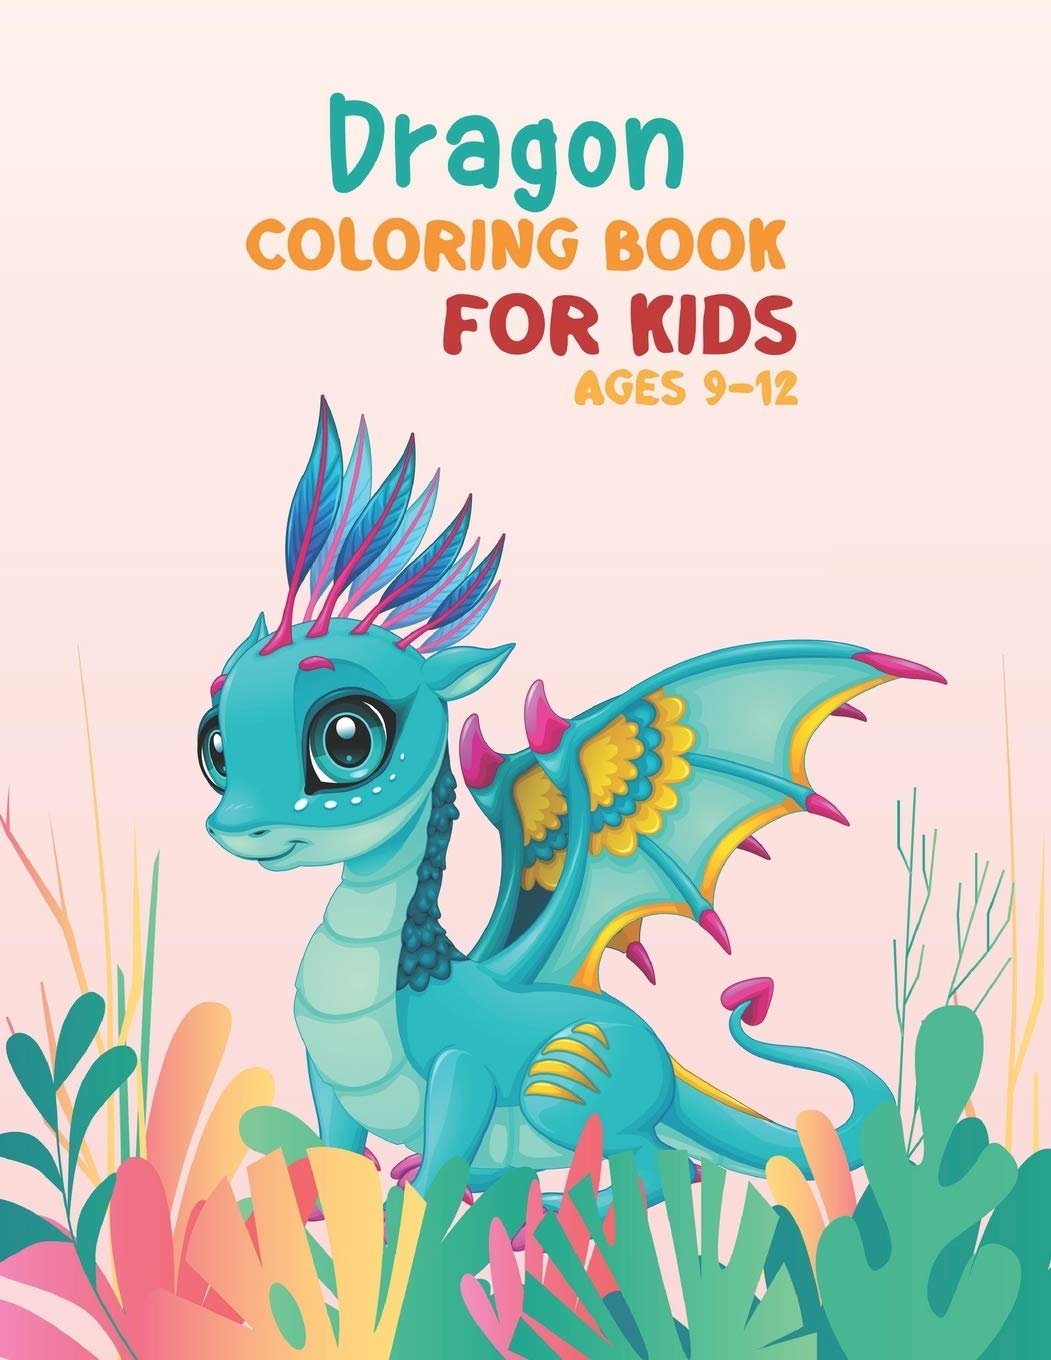 Dragon Coloring Book For Kids Ages 9 12 Dragon Coloring Book For Kids Ages 9 11 9 12 Unique Coloring Pages Perfect For Boys And Girls Super Fun Coloring Book On Thanksgiving And Christmas